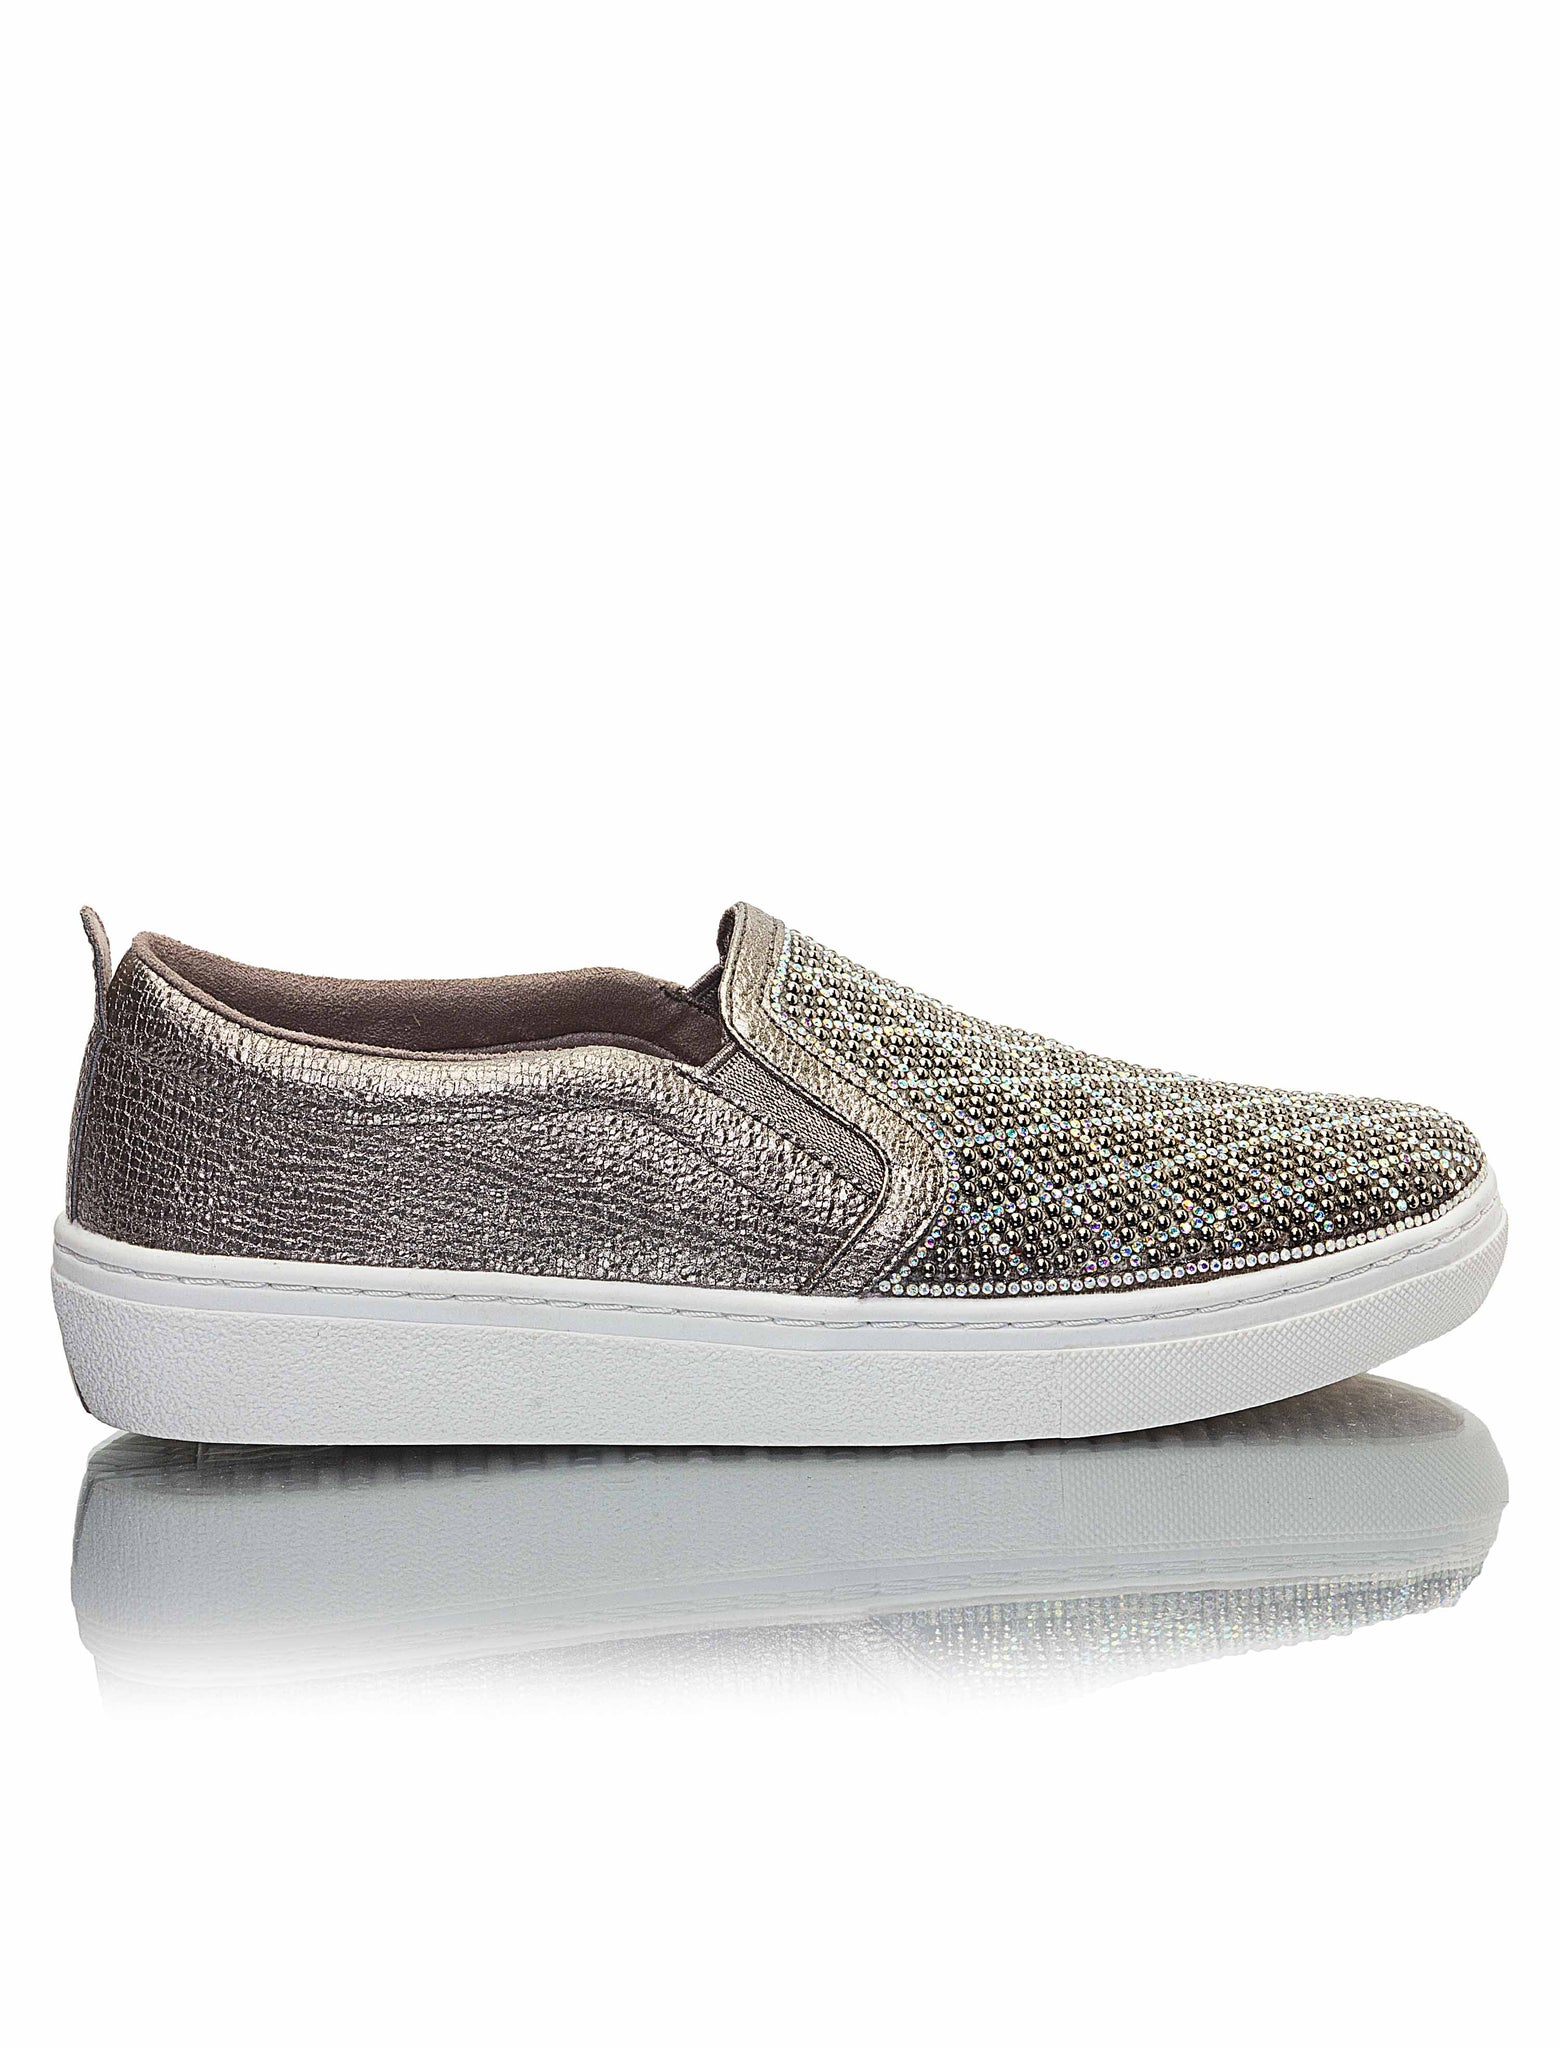 Ladies' Goldie-Diamond Sneakers - Pewter